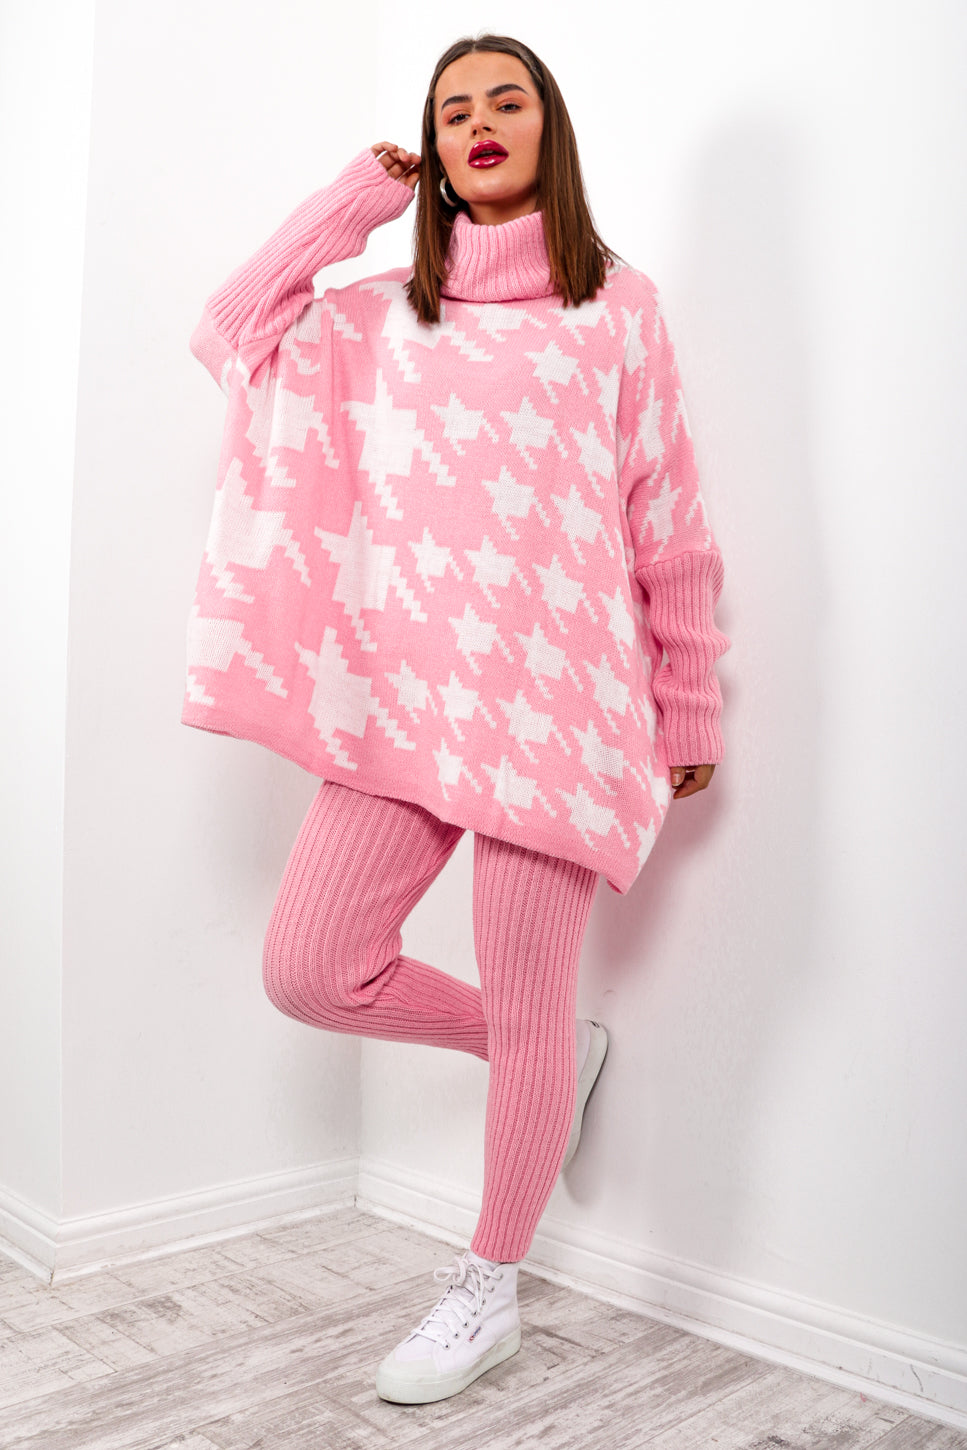 Pretty Chilled - Pink Houndstooth Knitted Co-ord